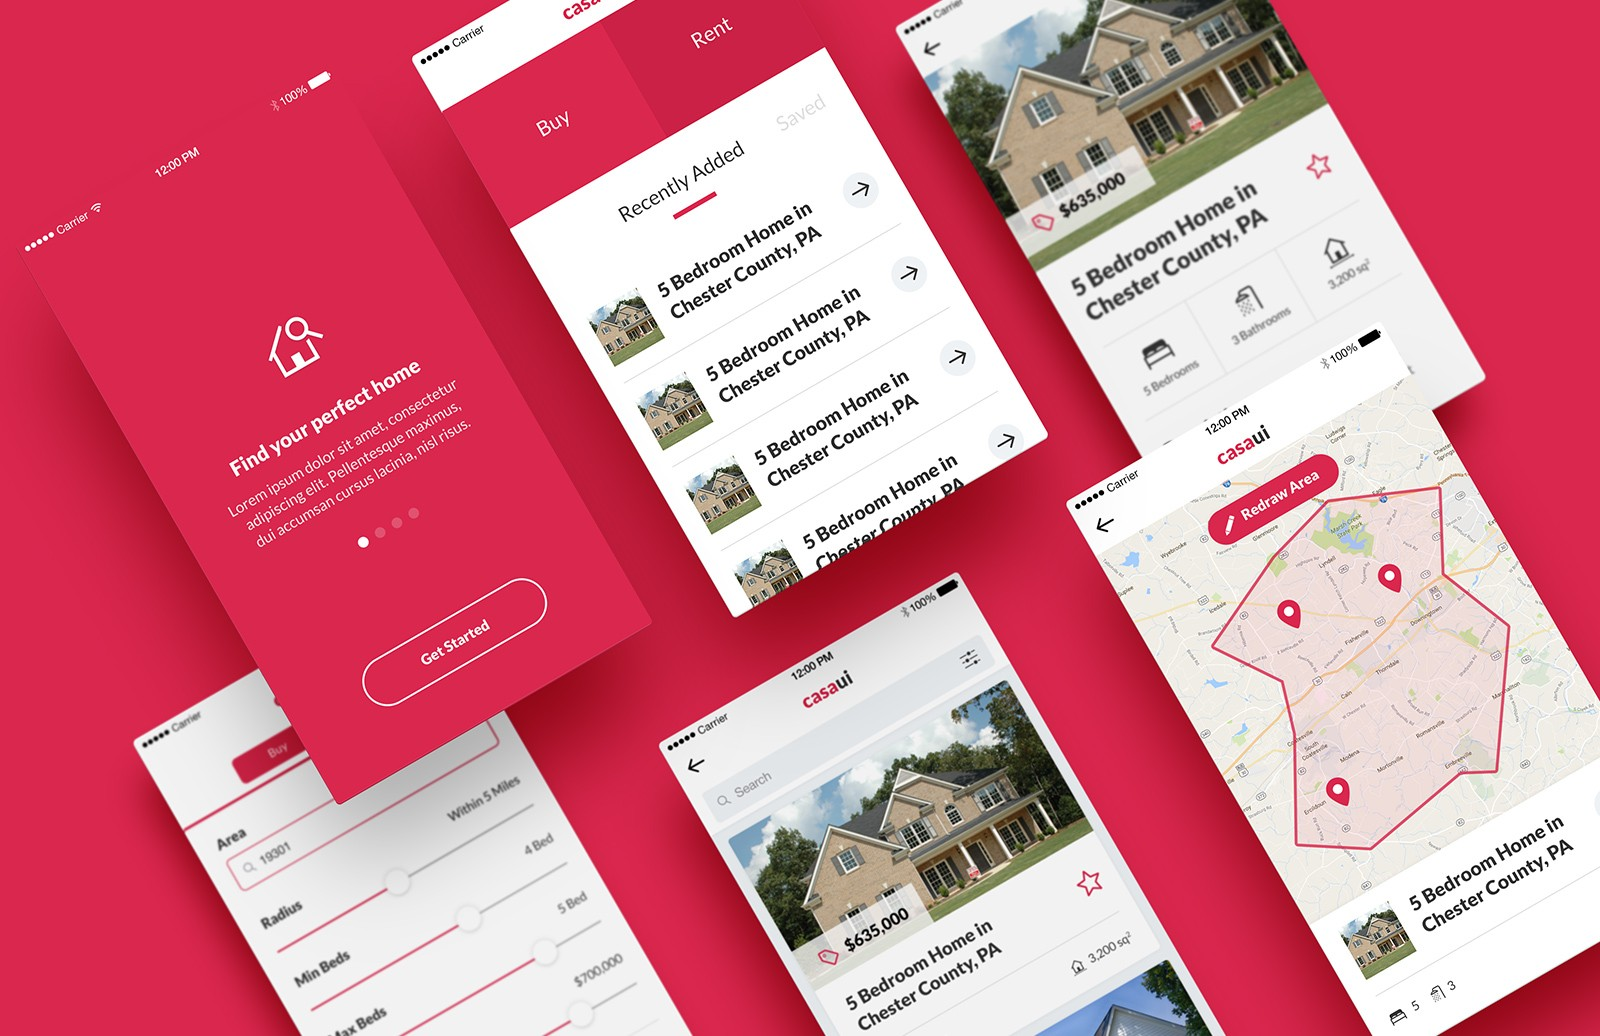 Casa - Property Mobile App UI Kit 1